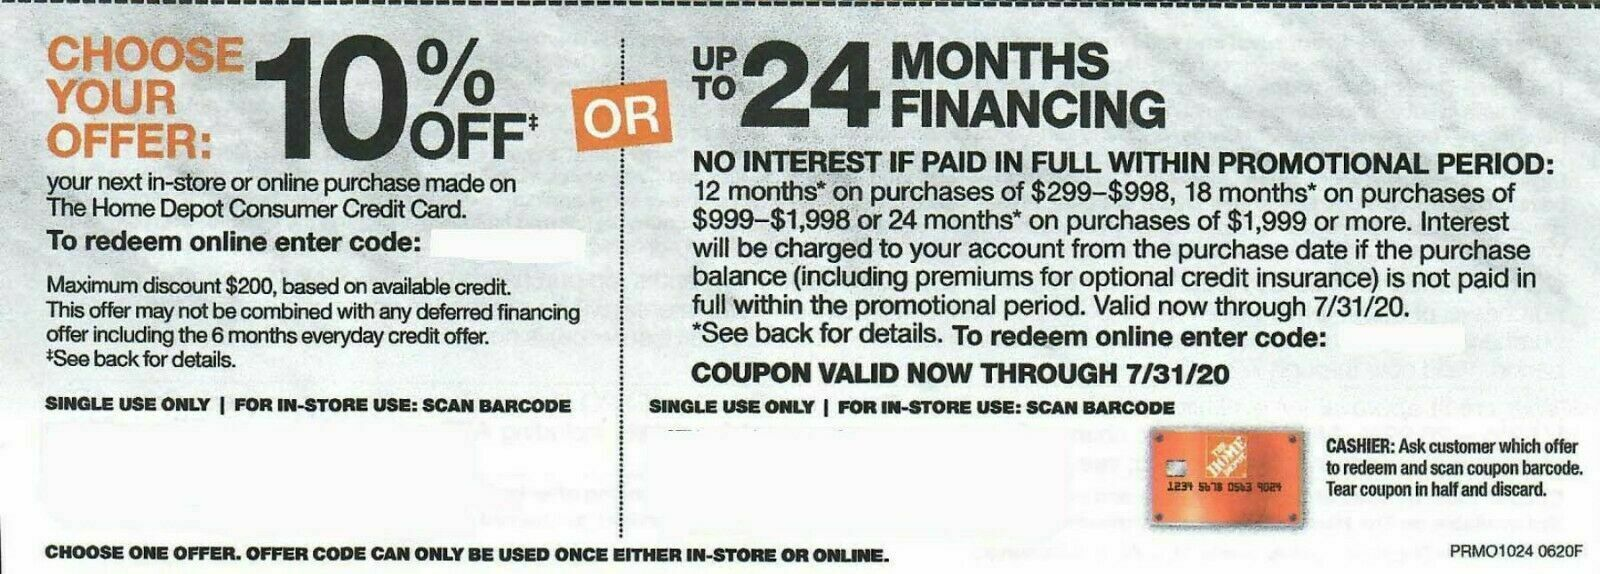 Home Depot 10 Off Up To 200 Coupon In-Store Online Expires 11/04/2020 - $37.95